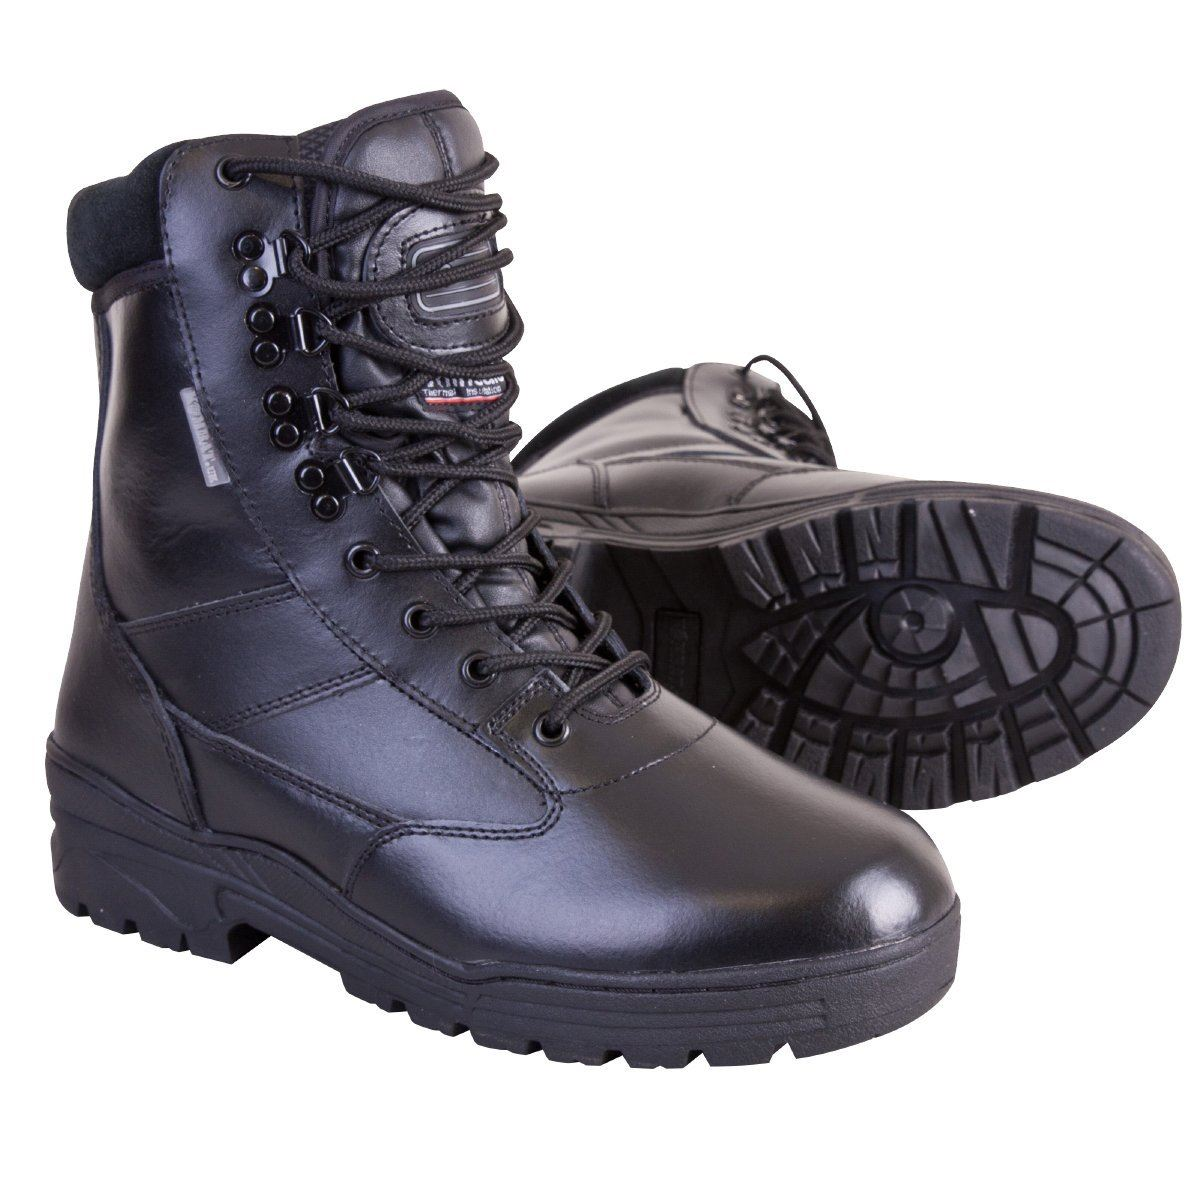 KOMBAT  ALL LEATHER THINSULATE LINED PATROL BOOTS ARMY MILITARY STYLE